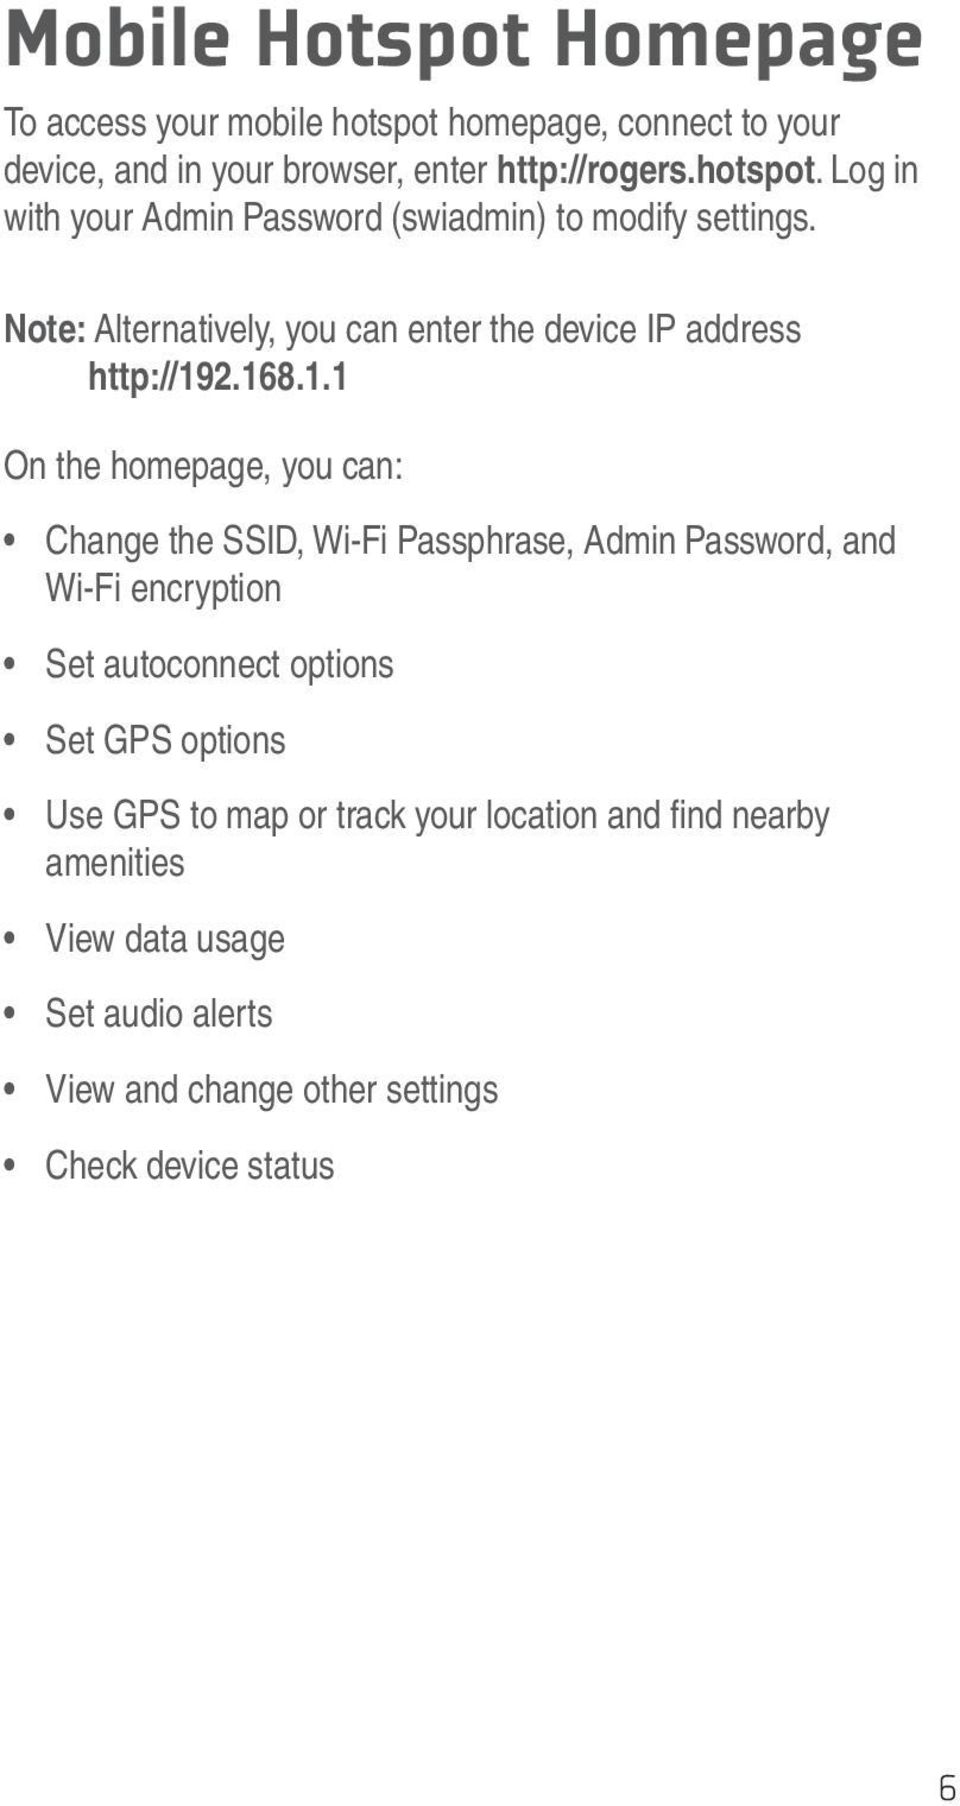 2.168.1.1 On the homepage, you can: Change the SSID, Wi-Fi Passphrase, Admin Password, and Wi-Fi encryption Set autoconnect options Set GPS